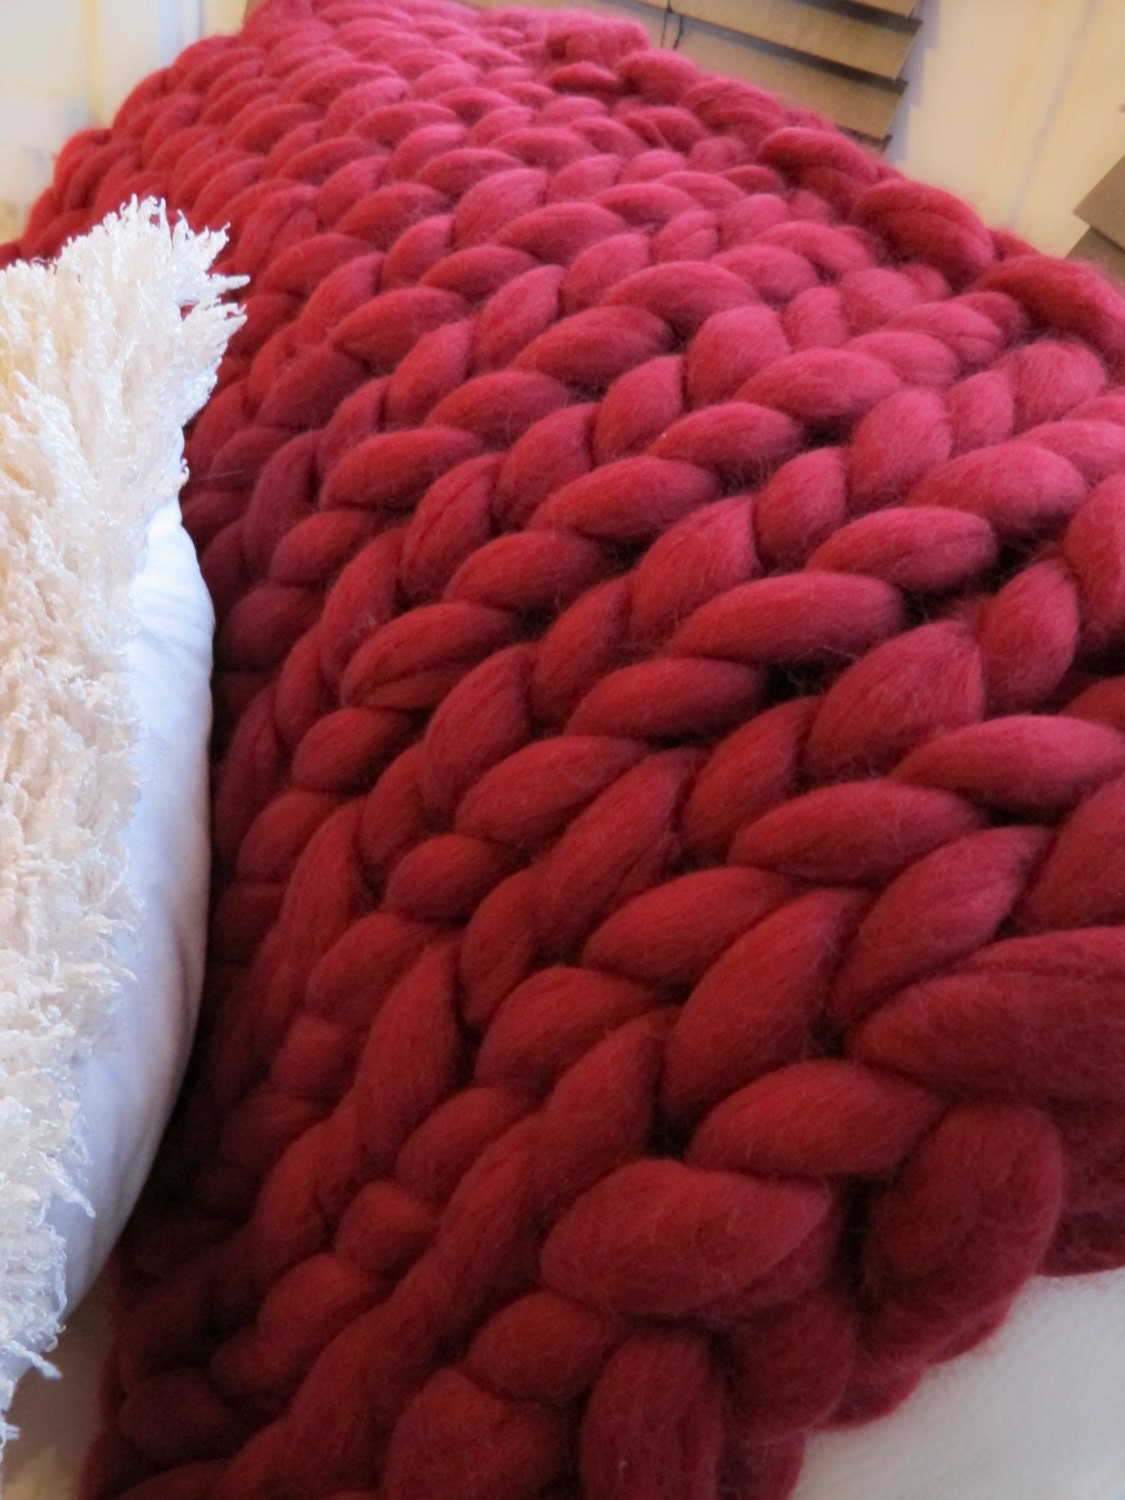 Knitting Patterns For Chunky Wool Blankets : Super chunky knit blanket 100% Merino Wool Blanket Handmade